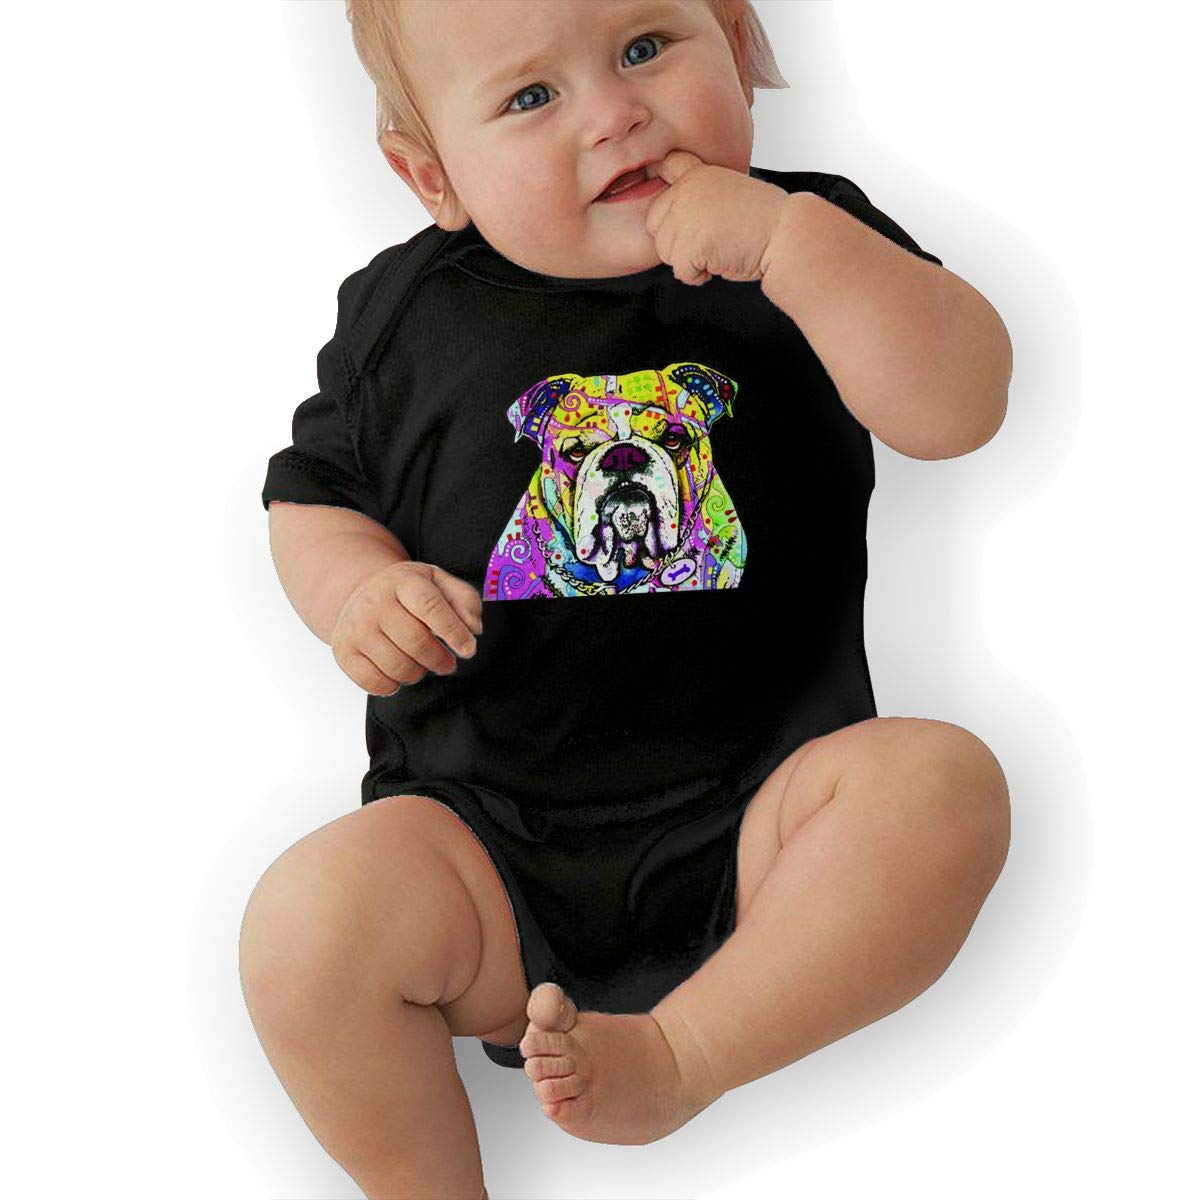 HappyLifea Bulldog Baby Pajamas Bodysuits Clothes Onesies Jumpsuits Outfits Black